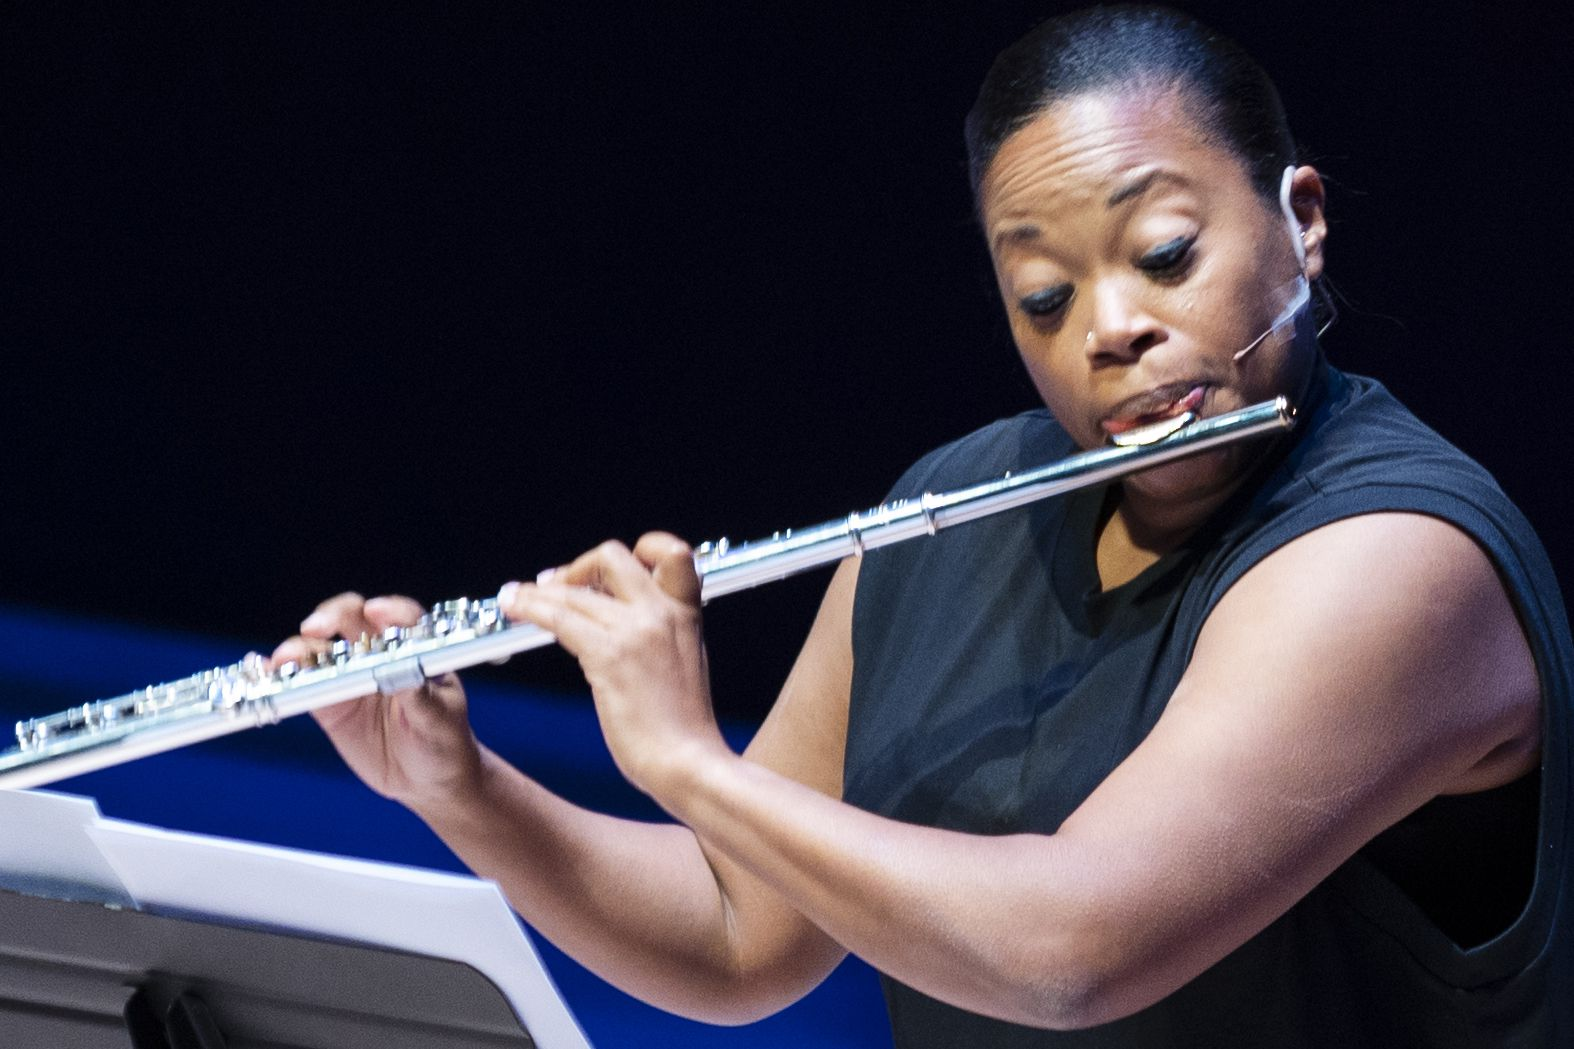 Flutist Ebonee Thomas performs 'NoaNoa' (1992) by Finnish composer Kaija Saariaho as part of the Voices of Change season opener on Sept. 19 at SMU's Caruth Auditorium in Dallas.